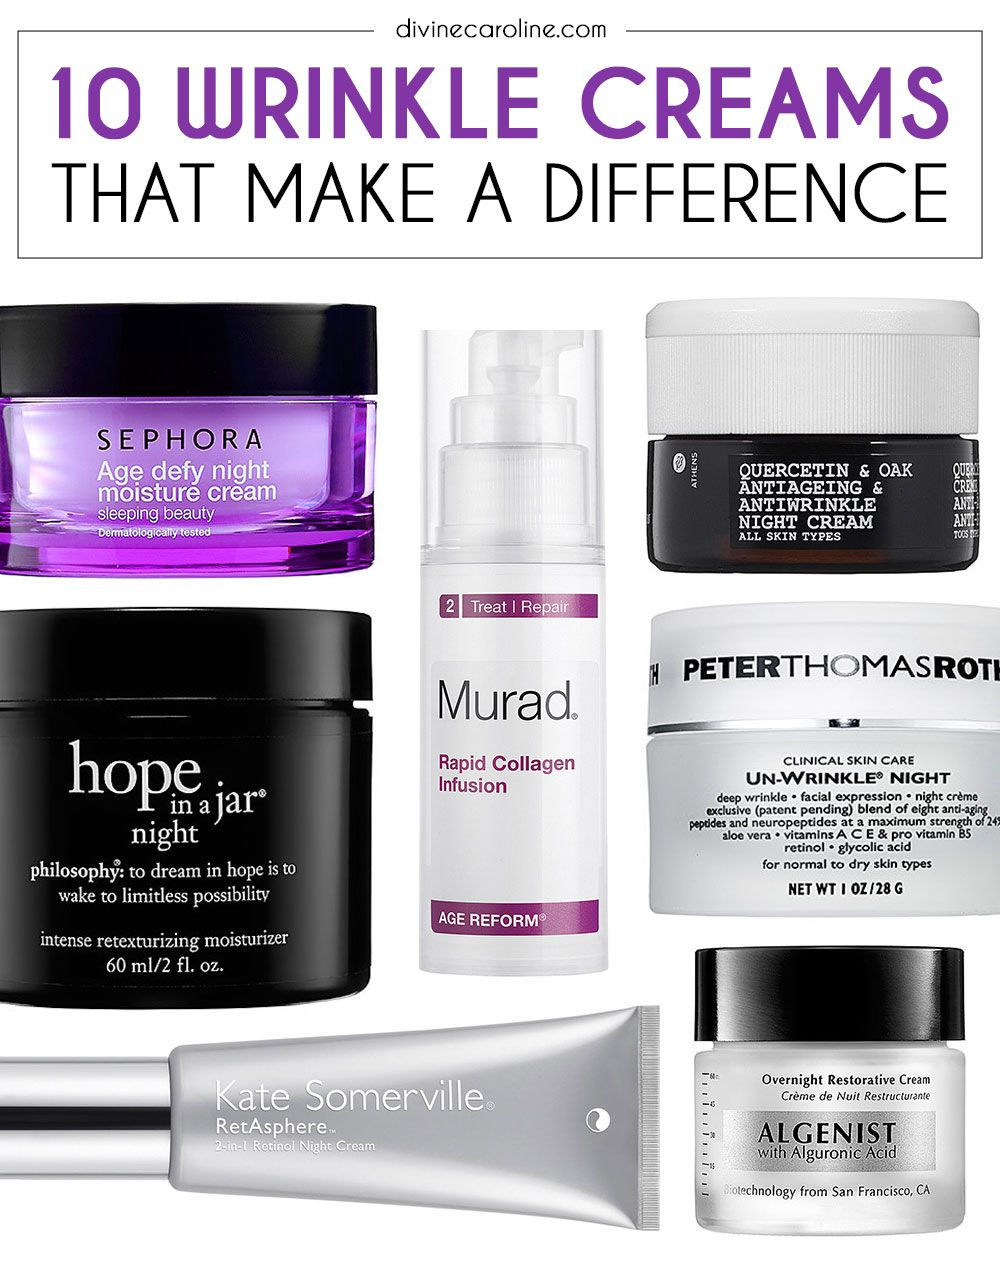 10 Wrinkle Cream Products That Make a Difference